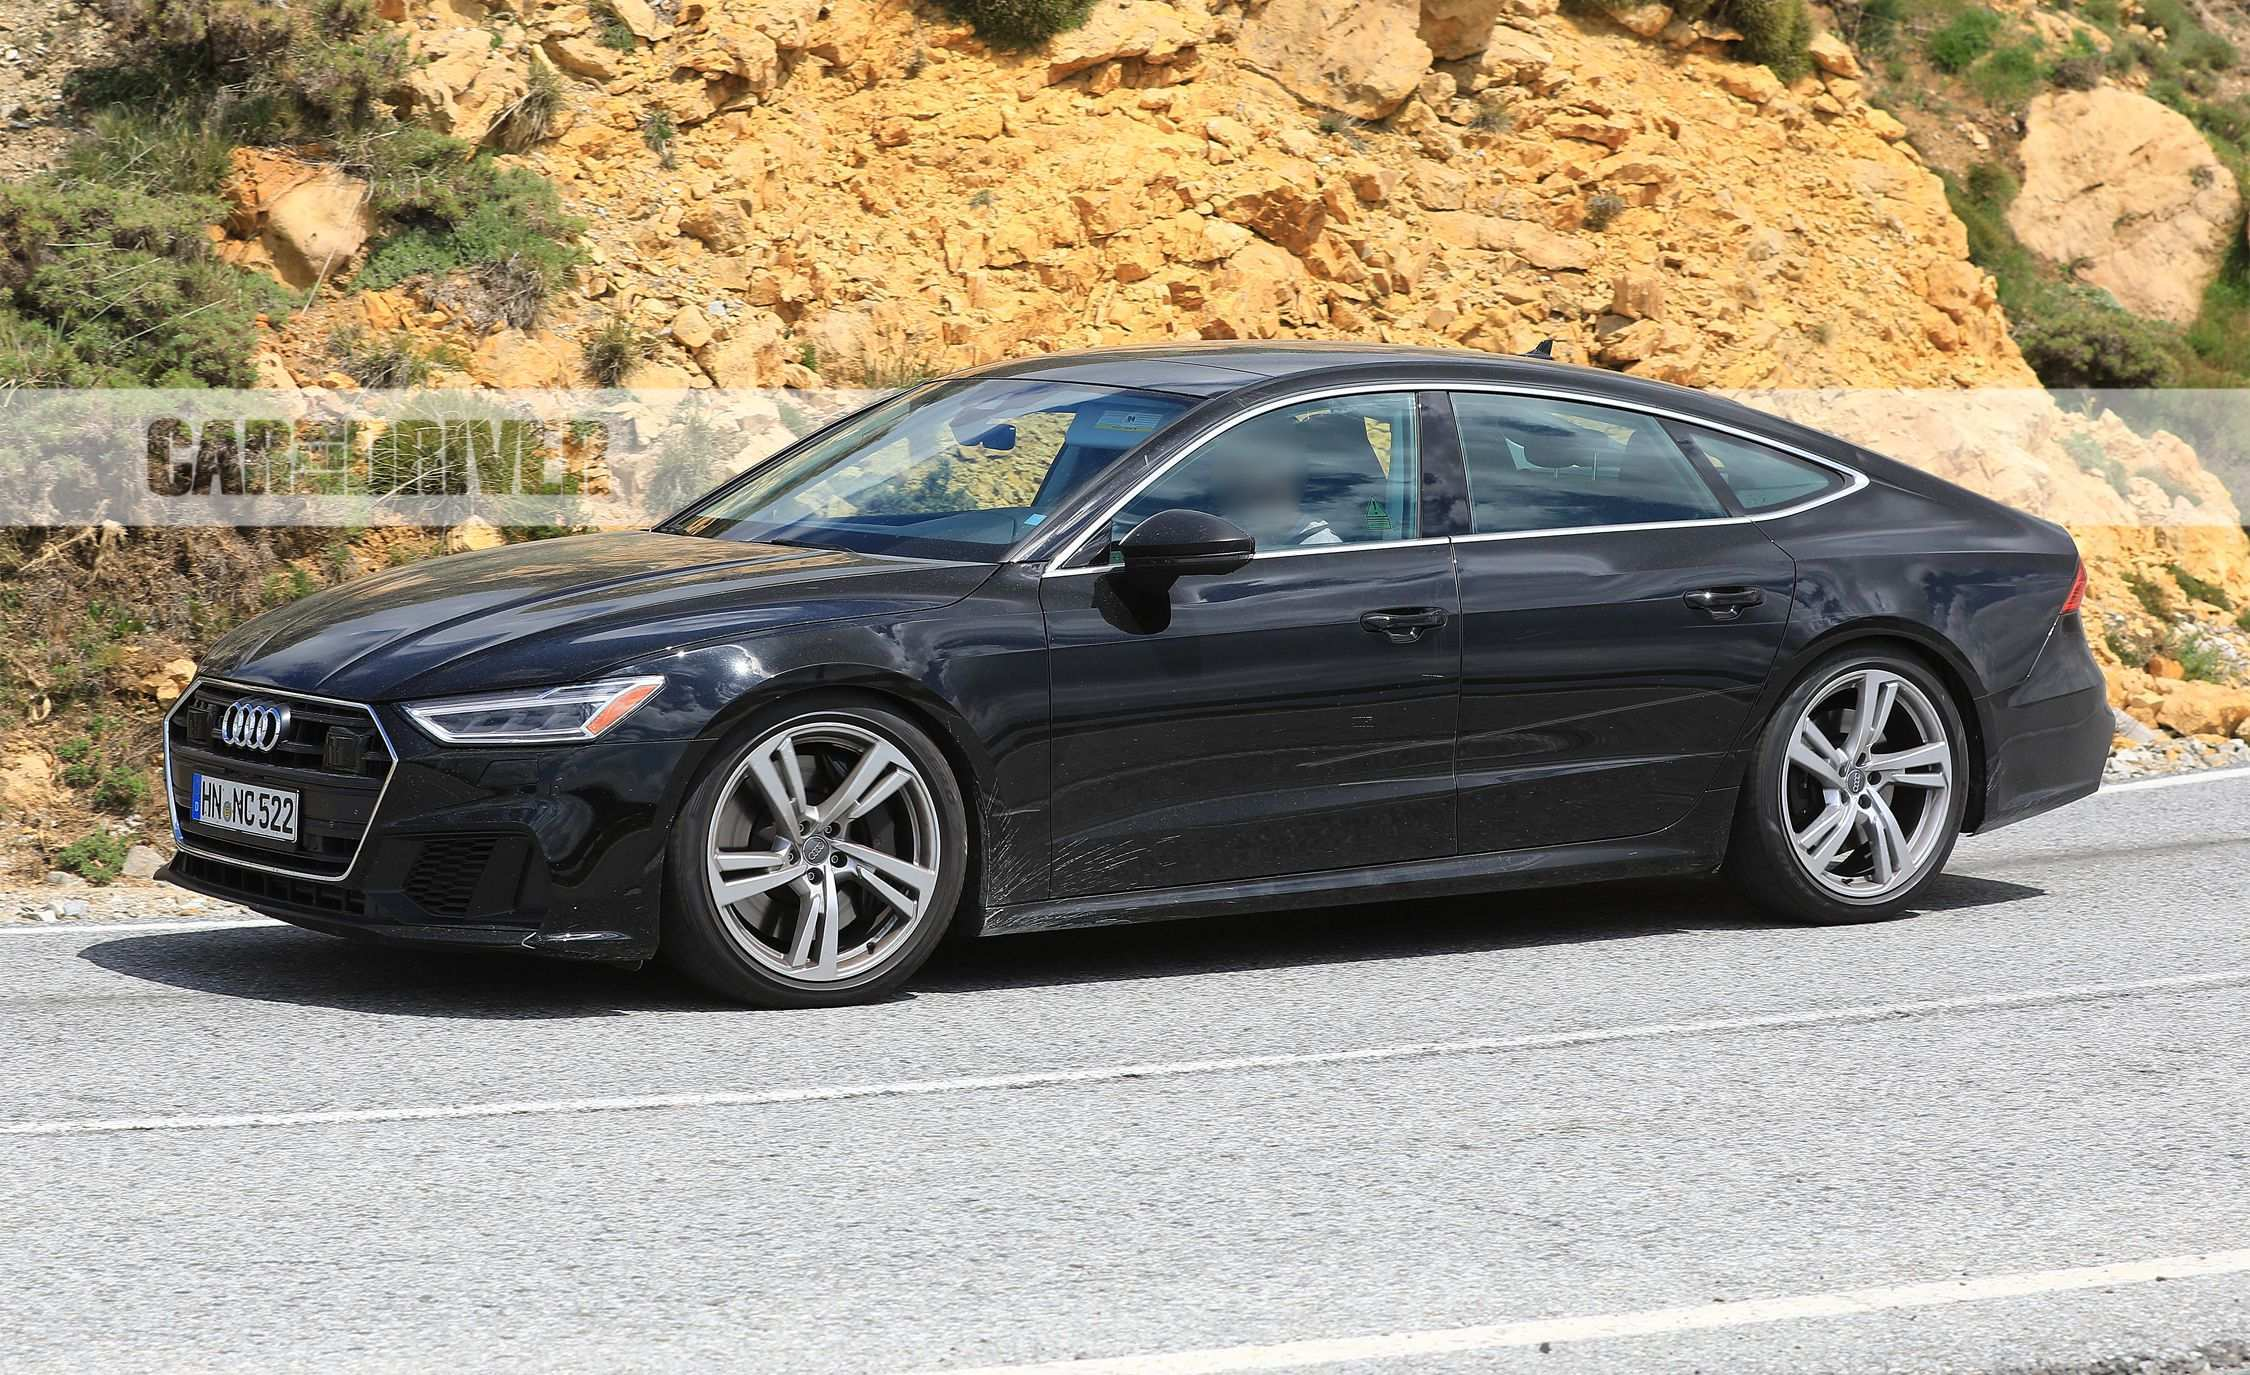 49 New 2020 Audi S7 Pictures by 2020 Audi S7